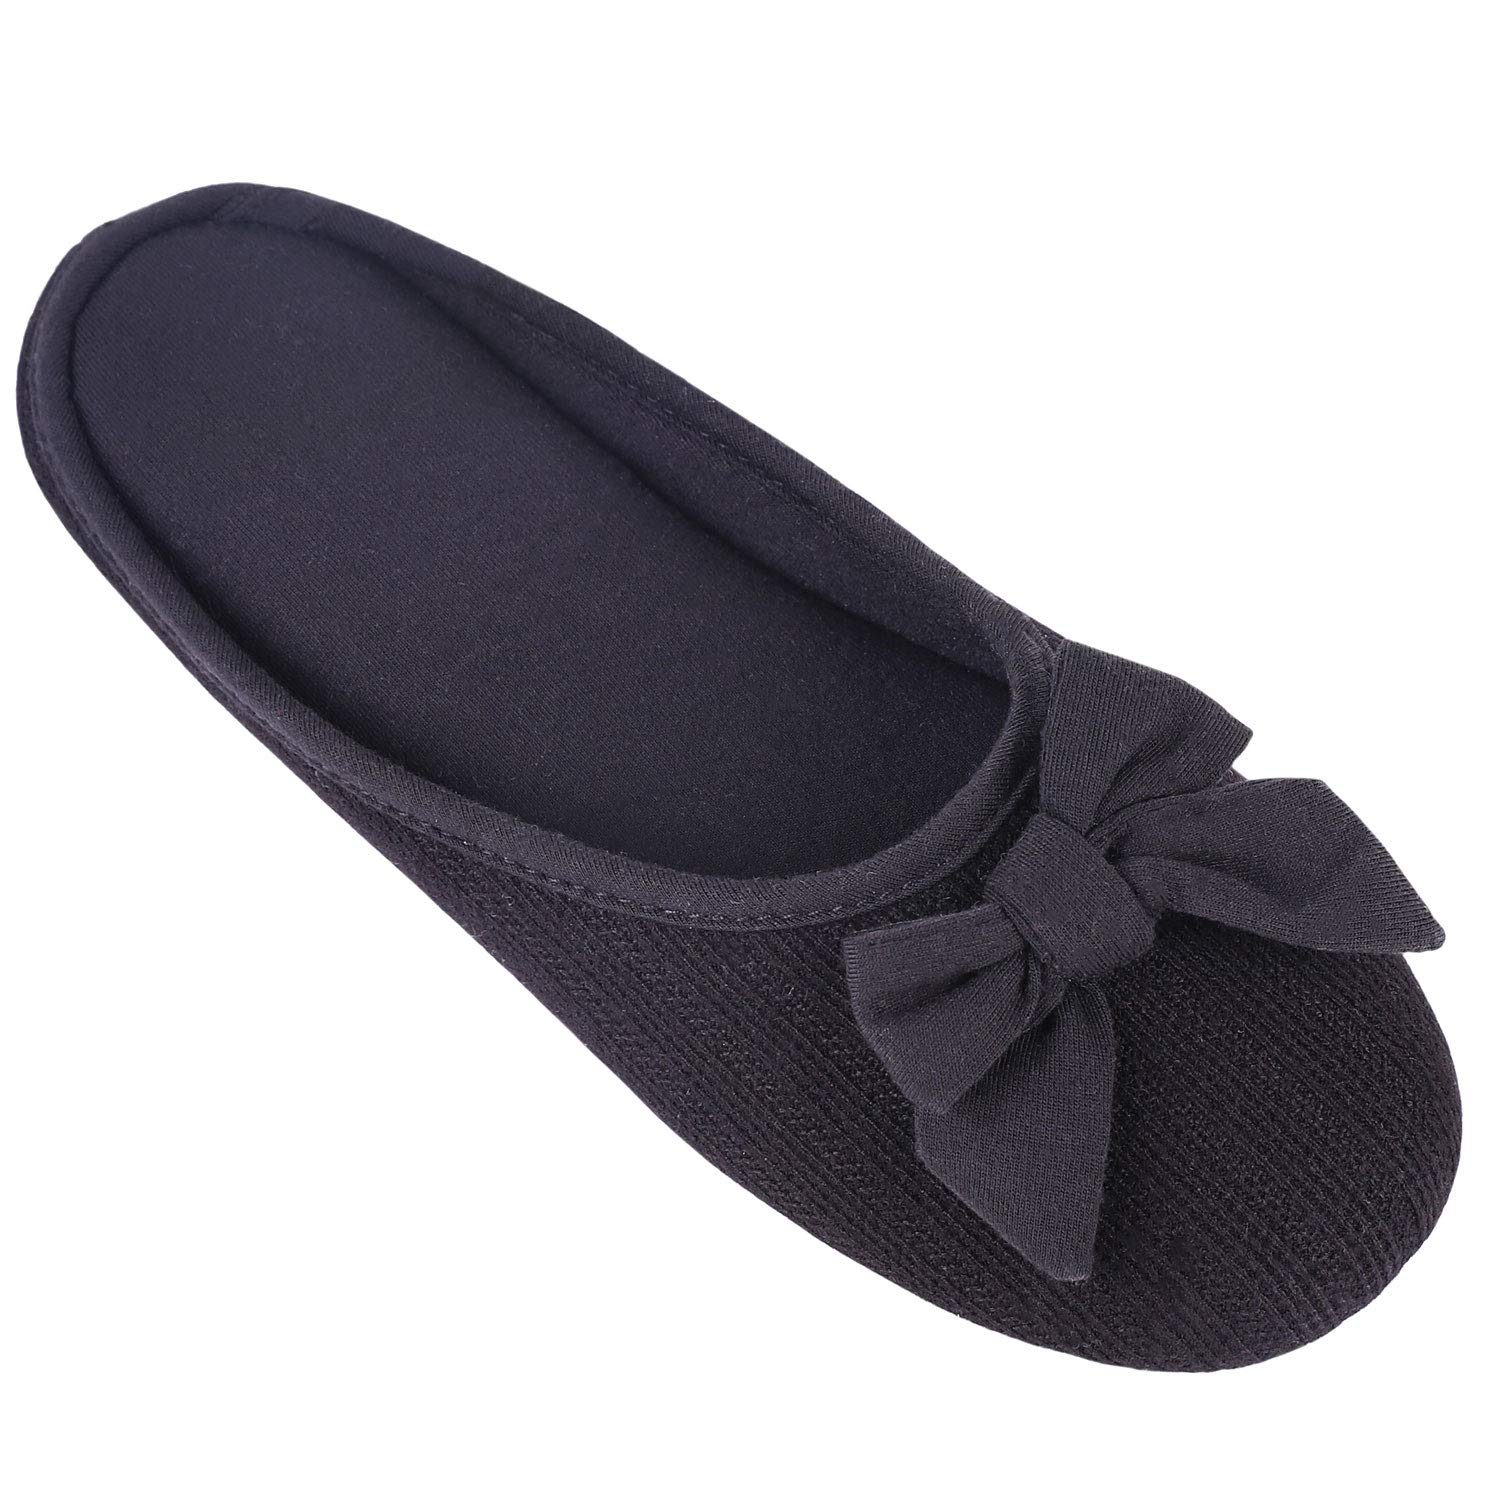 Women's Cozy Cashmere Cotton Closed Toe House Slippers with Cute Bow Accent